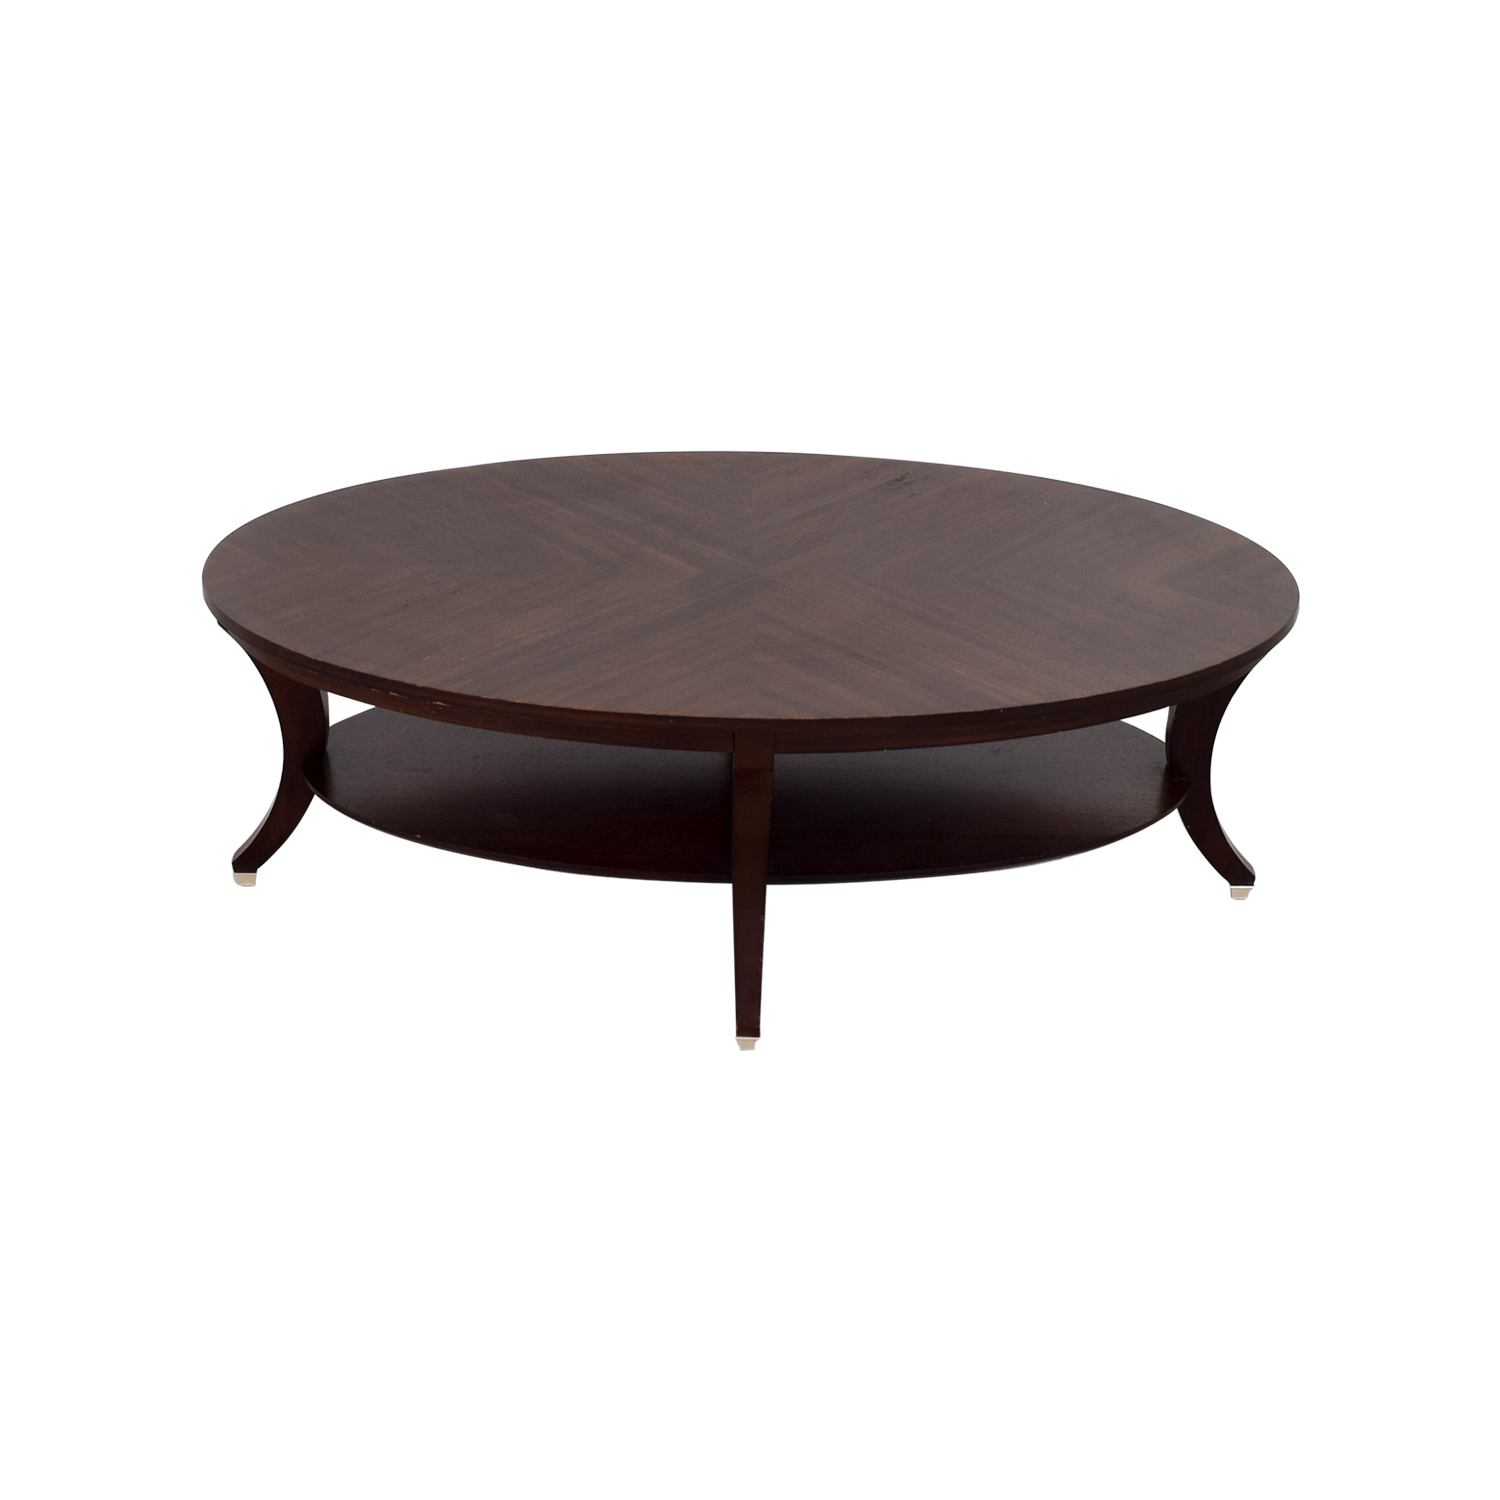 High Quality ... Ethan Allen Ethan Allen Adler Oval Coffee Table ...